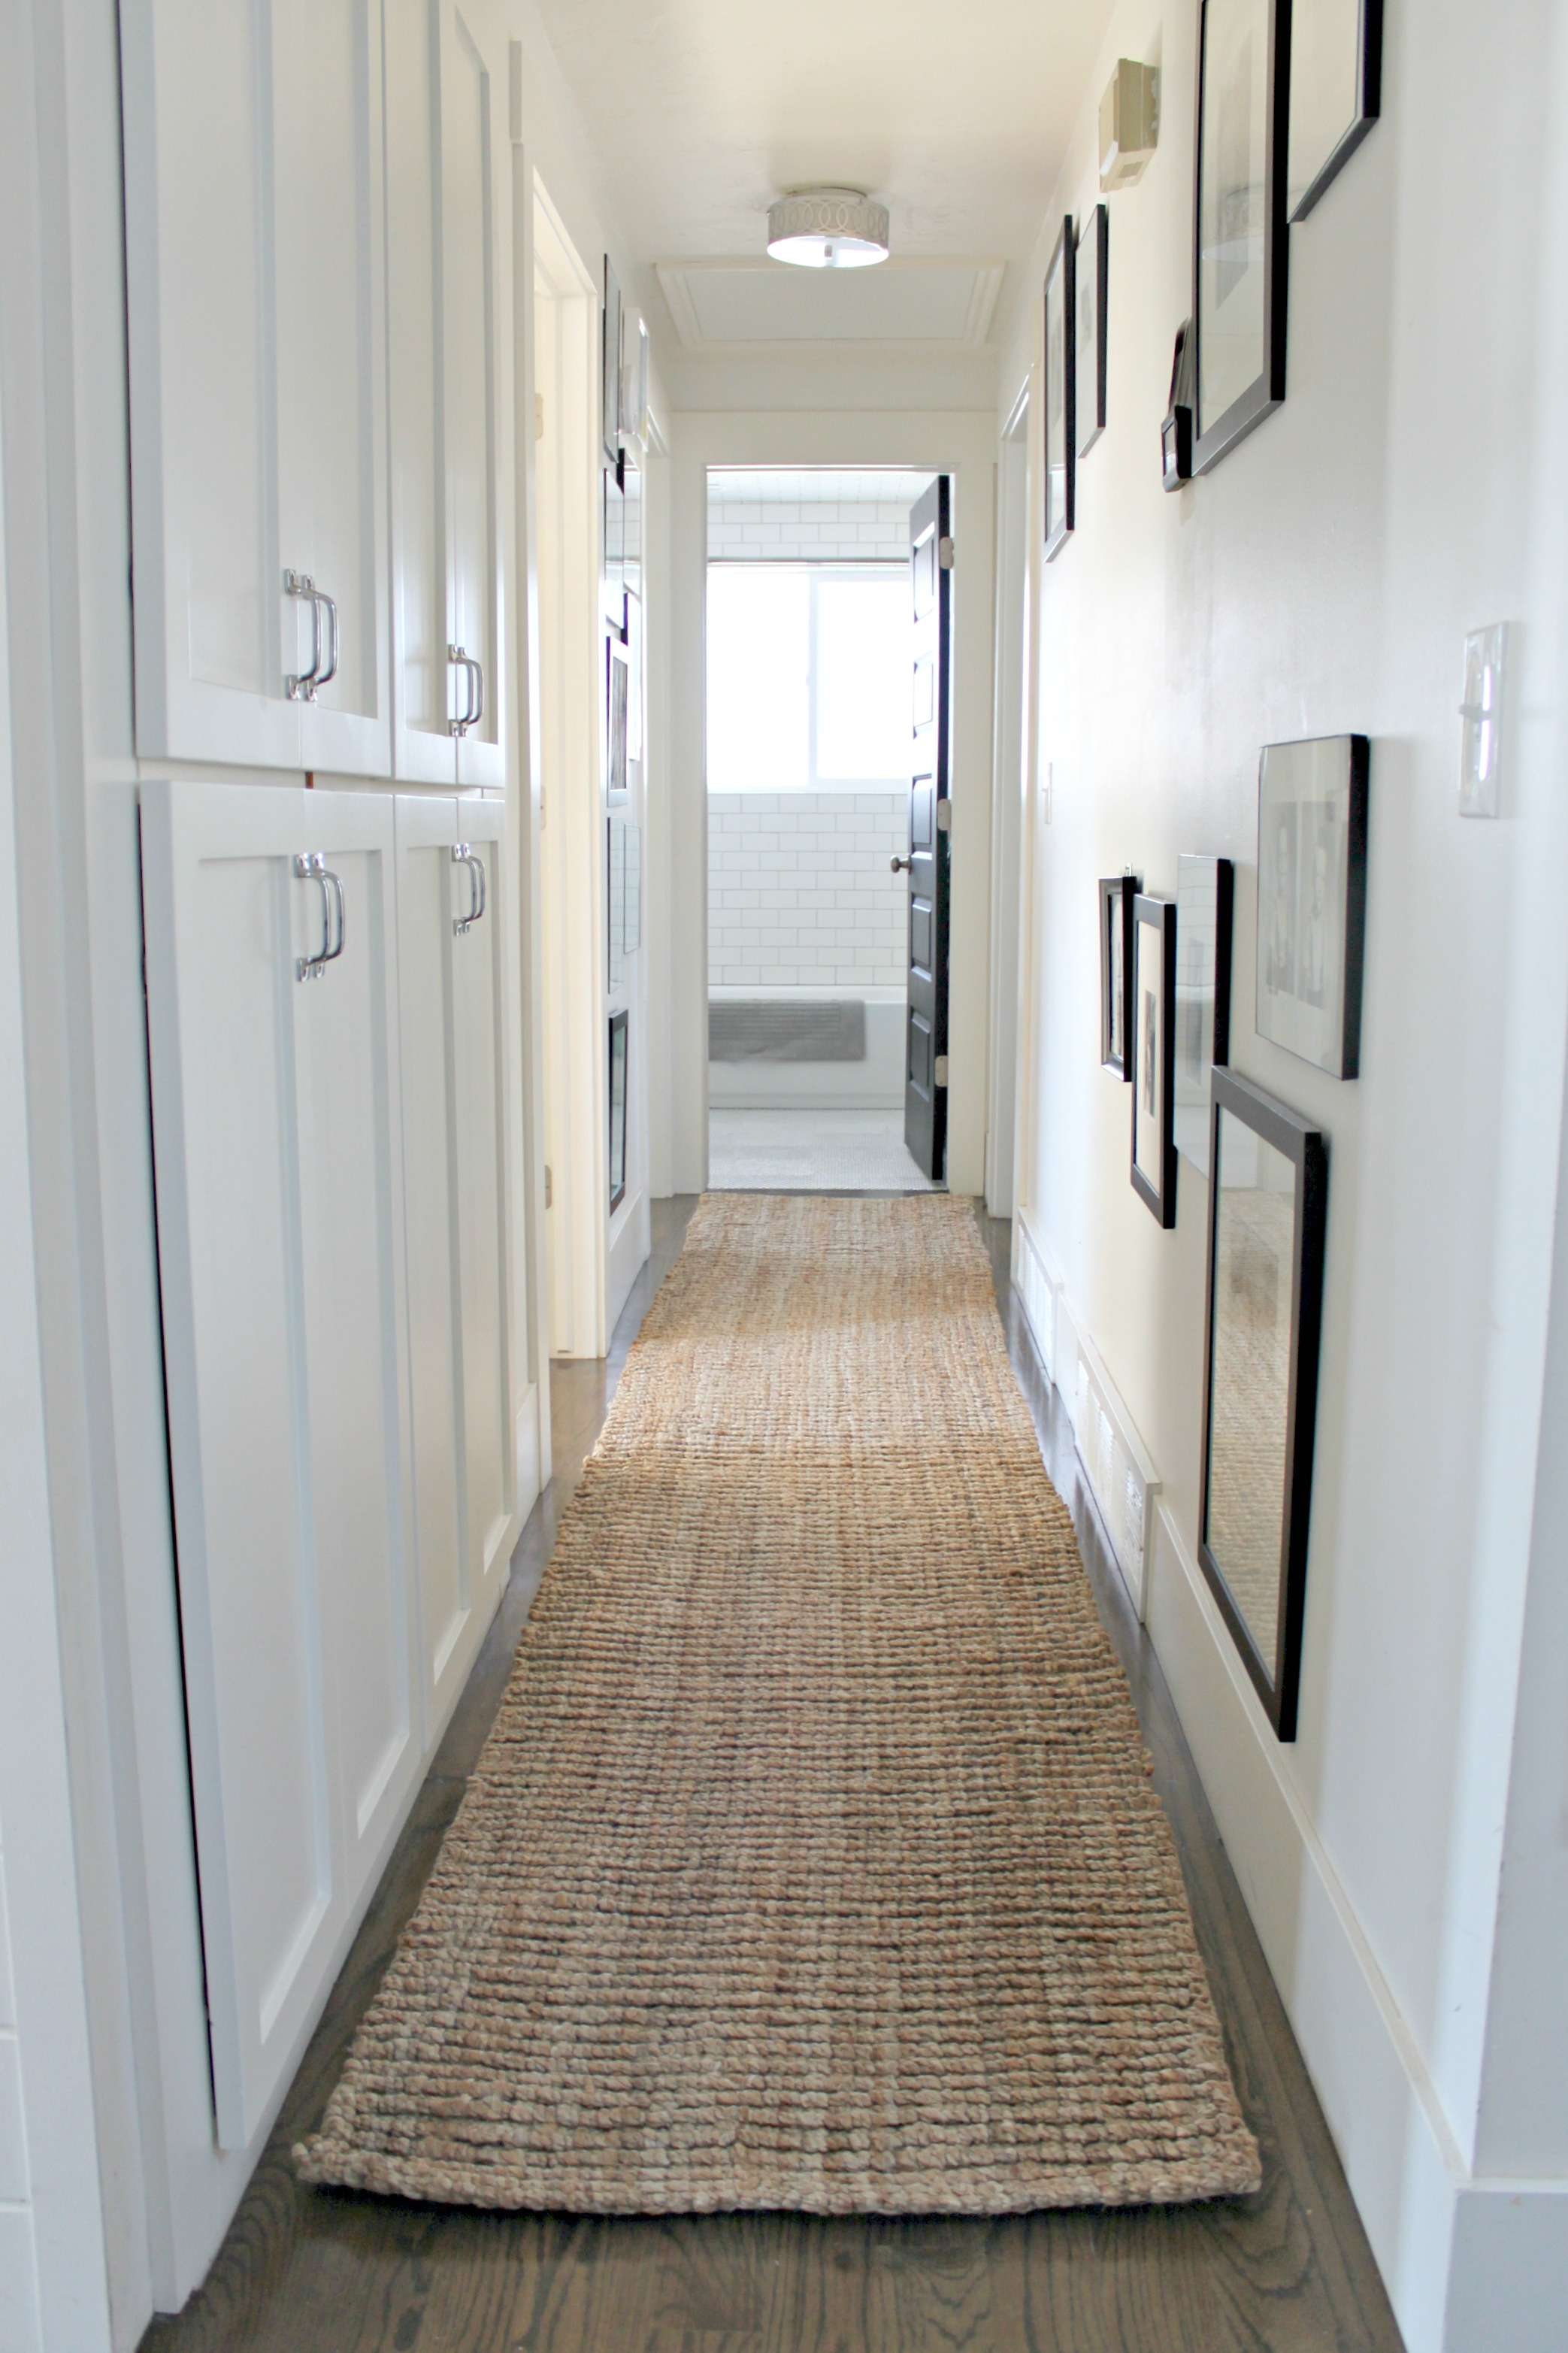 Flooring Lovely Hallway Runners For Floor Decor Idea Regarding Hallway Rugs And Runners (#10 of 20)